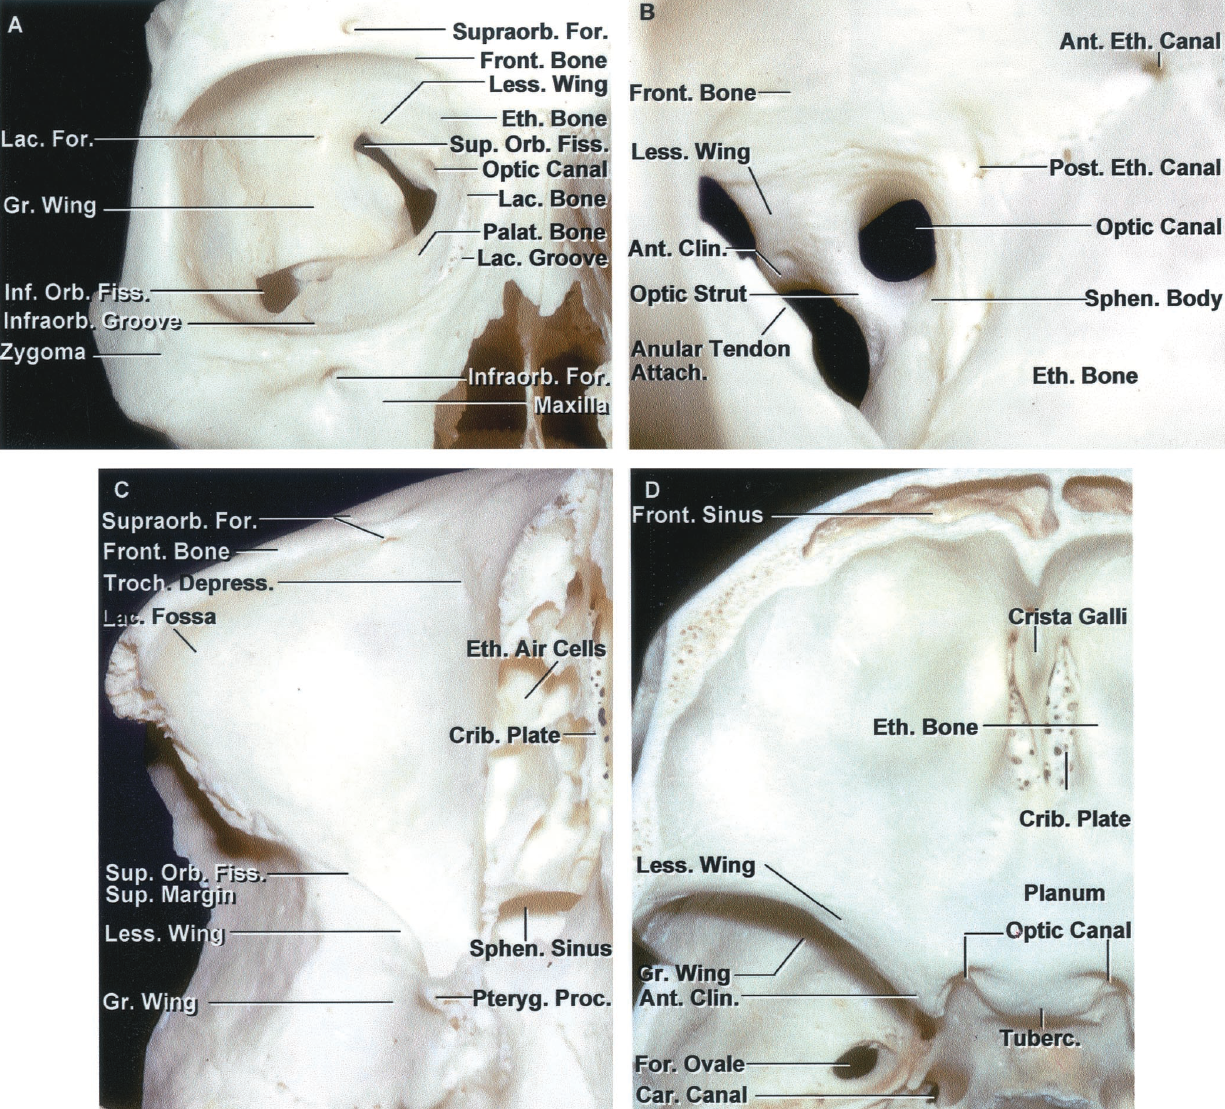 FIGURE 7.1. A-D. Osseous relationships of the orbit. A, anterior view of the right orbit. The walls of the orbit are formed by seven bones. They are the frontal, zygomatic, sphenoid, lacrimal, ethmoid, and palatine bones, and the maxilla. The lateral border of the orbital opening is formed by the frontal process of the zygoma, except the upper part, which is formed by the zygomatic process of the frontal bone. The lower margin of the orbital opening is formed laterally by the zygoma and medially by the maxilla. The upper part of the medial border is formed by the frontal bone and the lower part is formed by the frontal process of the maxilla. The medial part of the upper border contains the frontal sinus. The superior orbital fissure is bounded above by the lesser wing of the sphenoid bone, below by the greater wing, and medially by the sphenoid body. The frontal bone forms the narrow lateral apex of the superior orbital fissure. The inferior orbital fissure is bounded posteriorly by the greater sphenoid wing and anteriorly by the maxilla. The supraorbital margin is notched or is the site of one or several small foramina that transmit the supraorbital nerves and vessels. The infraorbital groove, which transmits the infraorbital branch of the maxillary nerve, leads forward out of the inferior orbital fissure to cross the floor to reach the infraorbital canal, which ends in the infraorbital foramen. B, anterior aspect of the right optic canal. The optic canal, which transmits the optic nerve and ophthalmic artery, opens into the superomedial corner of the orbital apex. The optic canal is situated at the junction of the lesser wing with the sphenoid body. It is separated from the superior orbital fissure by the optic strut, a bridge of bone, which extends from the lower margin of the anterior clinoid to the sphenoid body. The optic strut is also referred to as the posterior root of the lesser wing. The tendinous ring, referred to as the annular tendon, from which the f